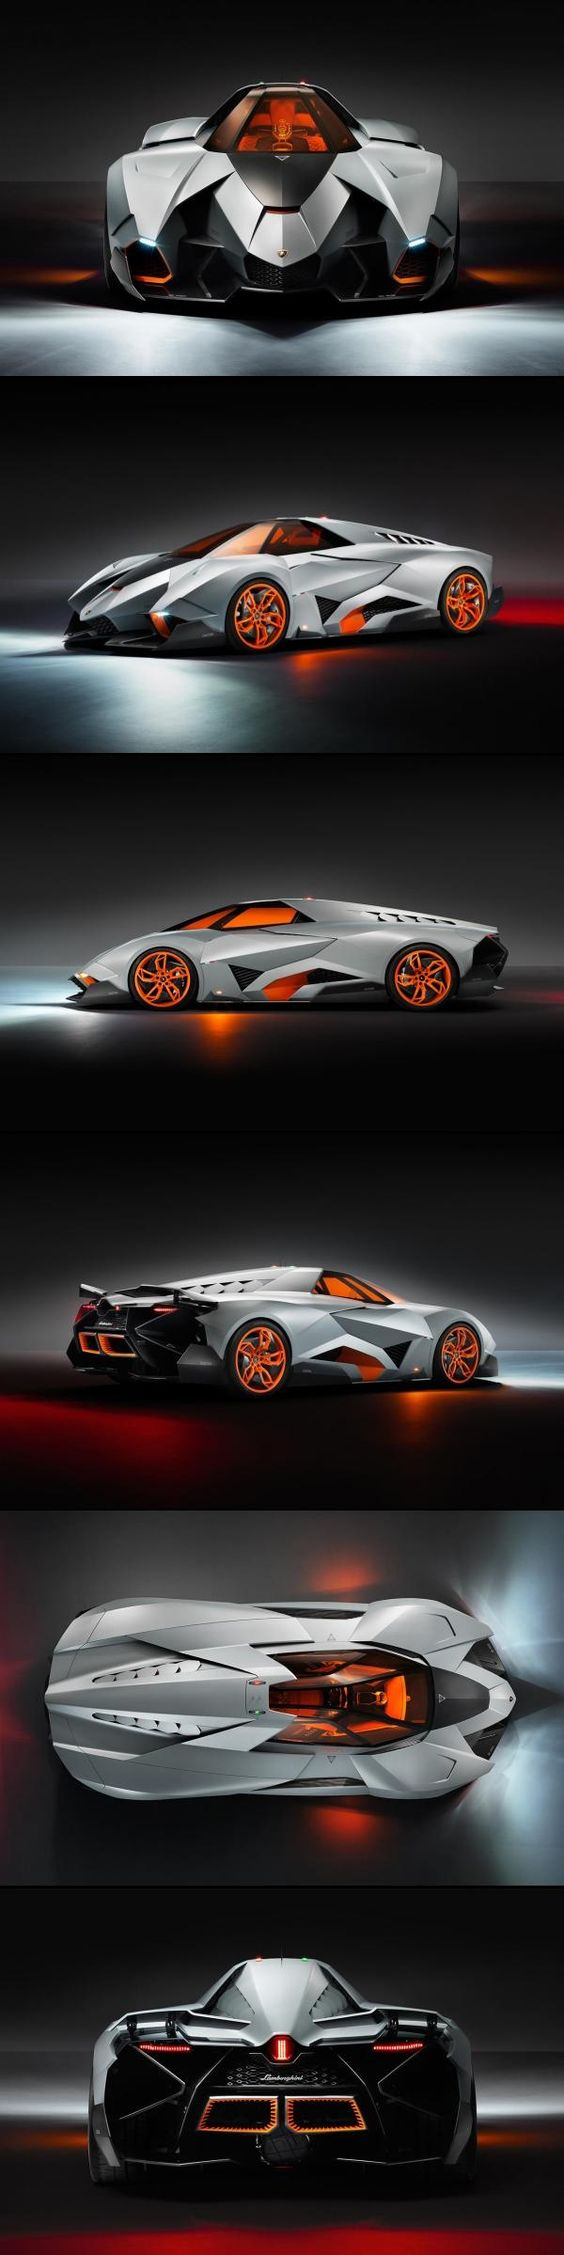 The Lamborghini Egoista – The Maddest Bull Ever. Hit the pic to find out why!: